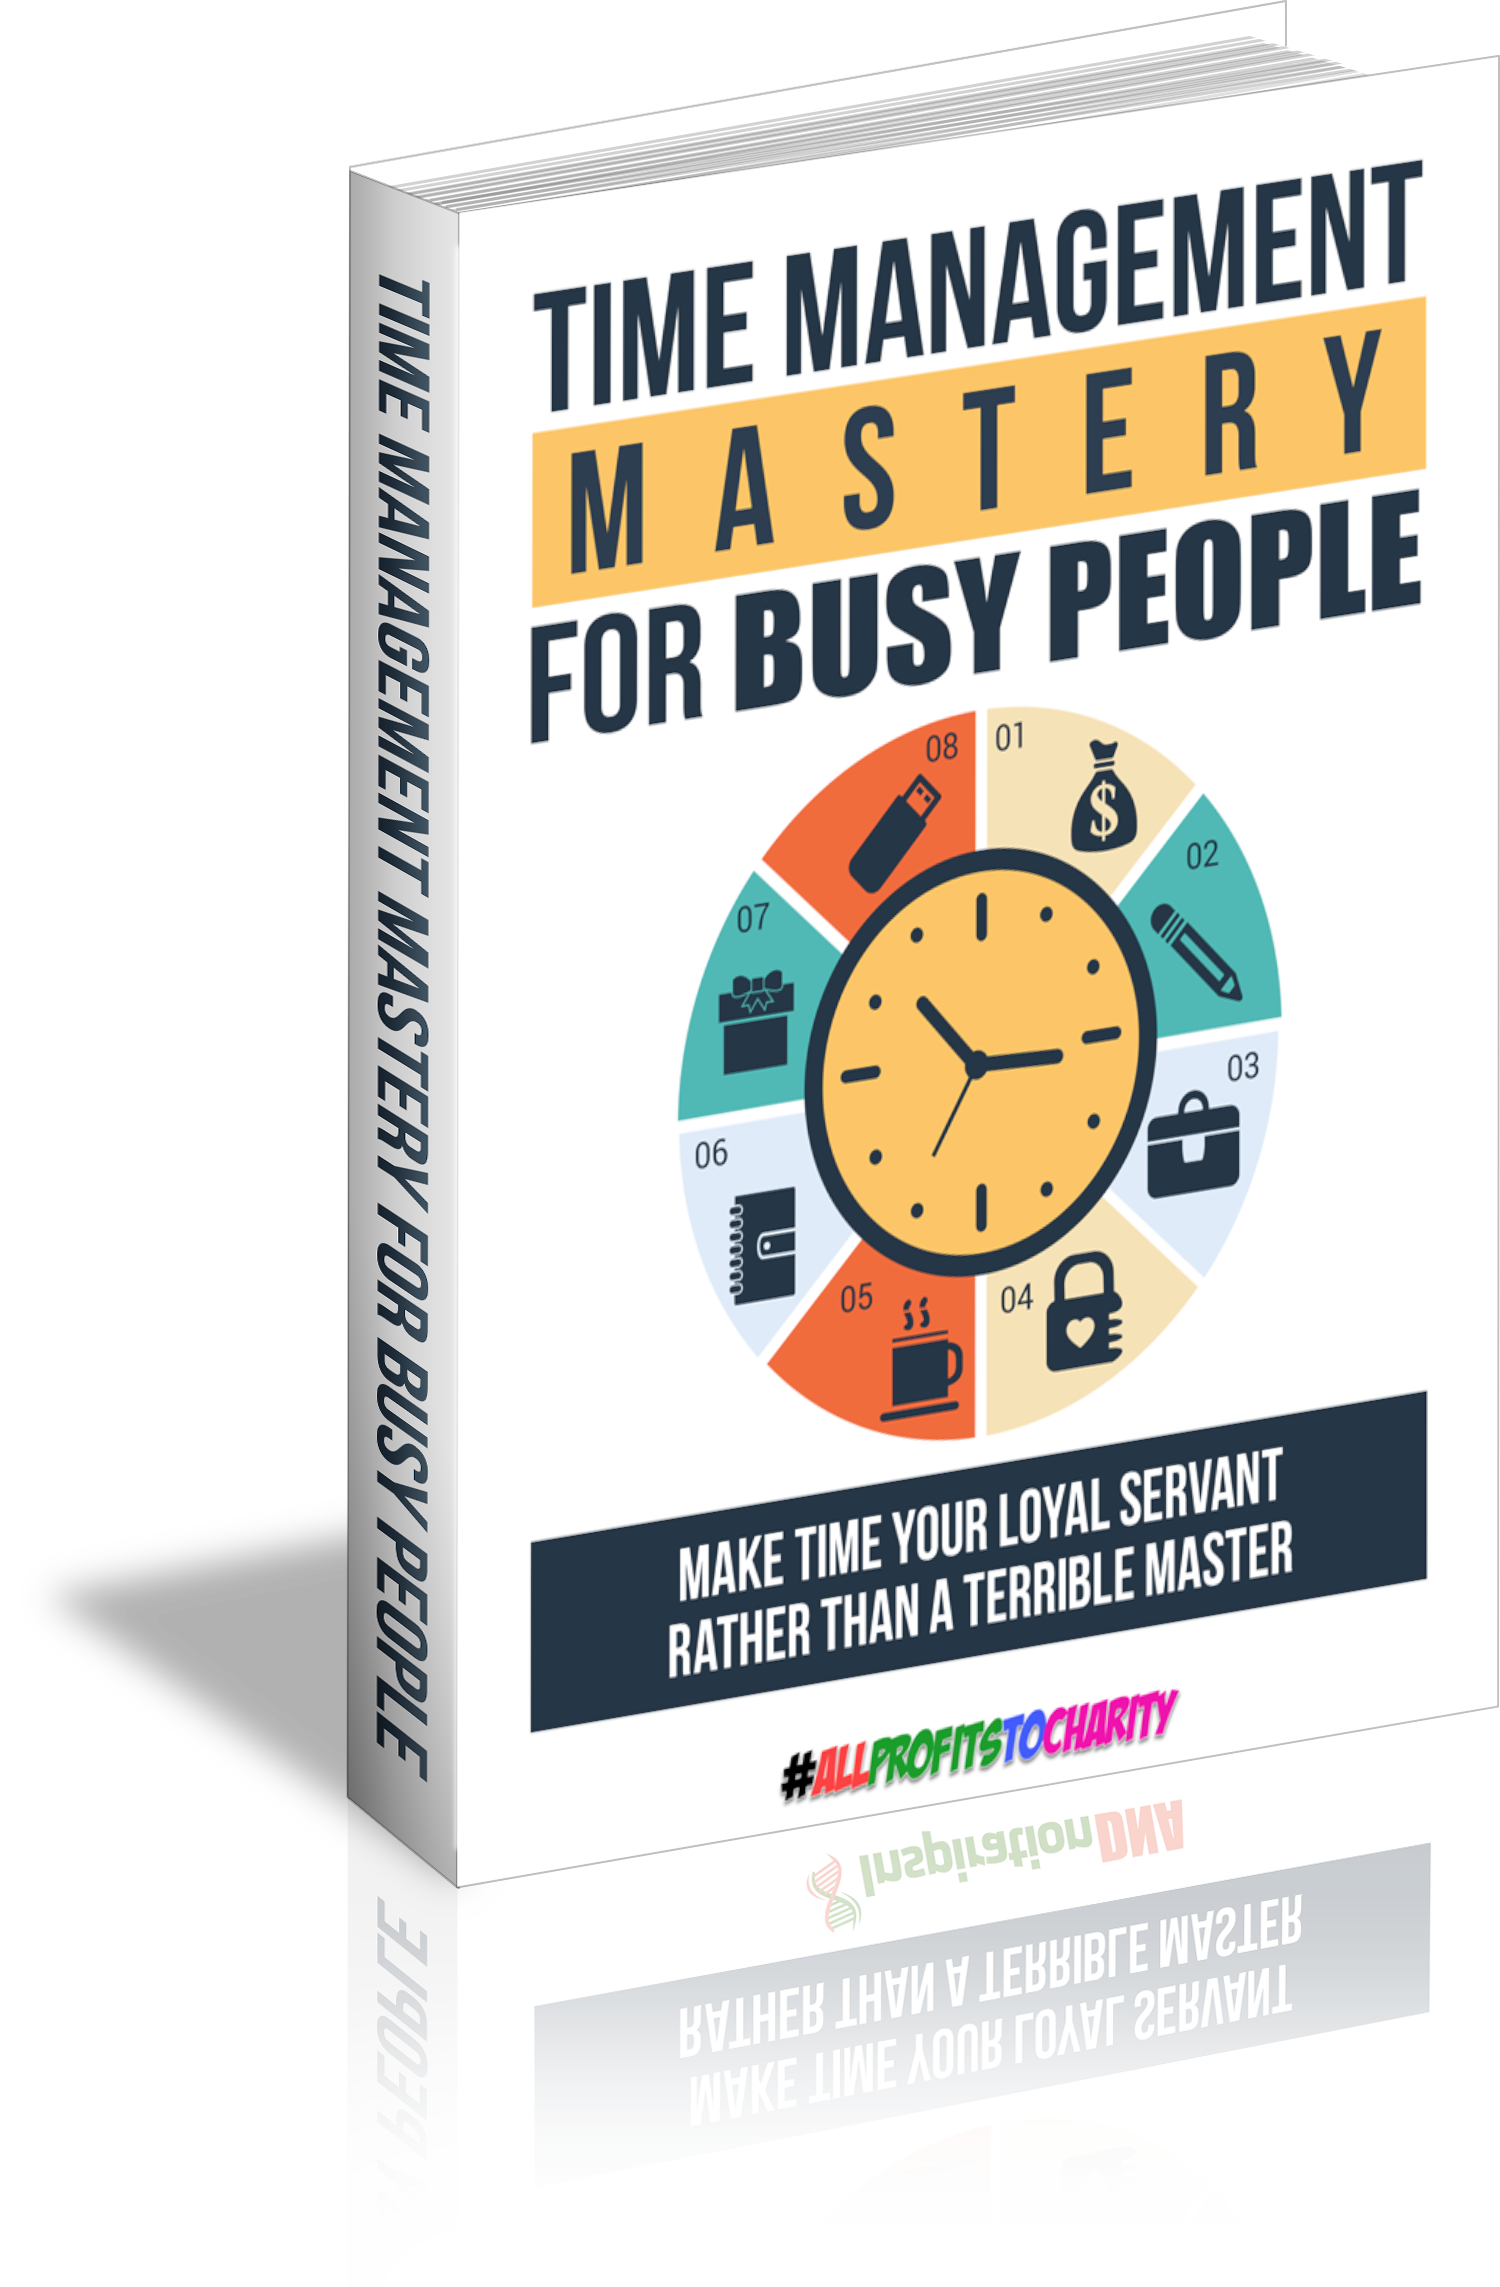 Time Management Mastery For Busy People cover